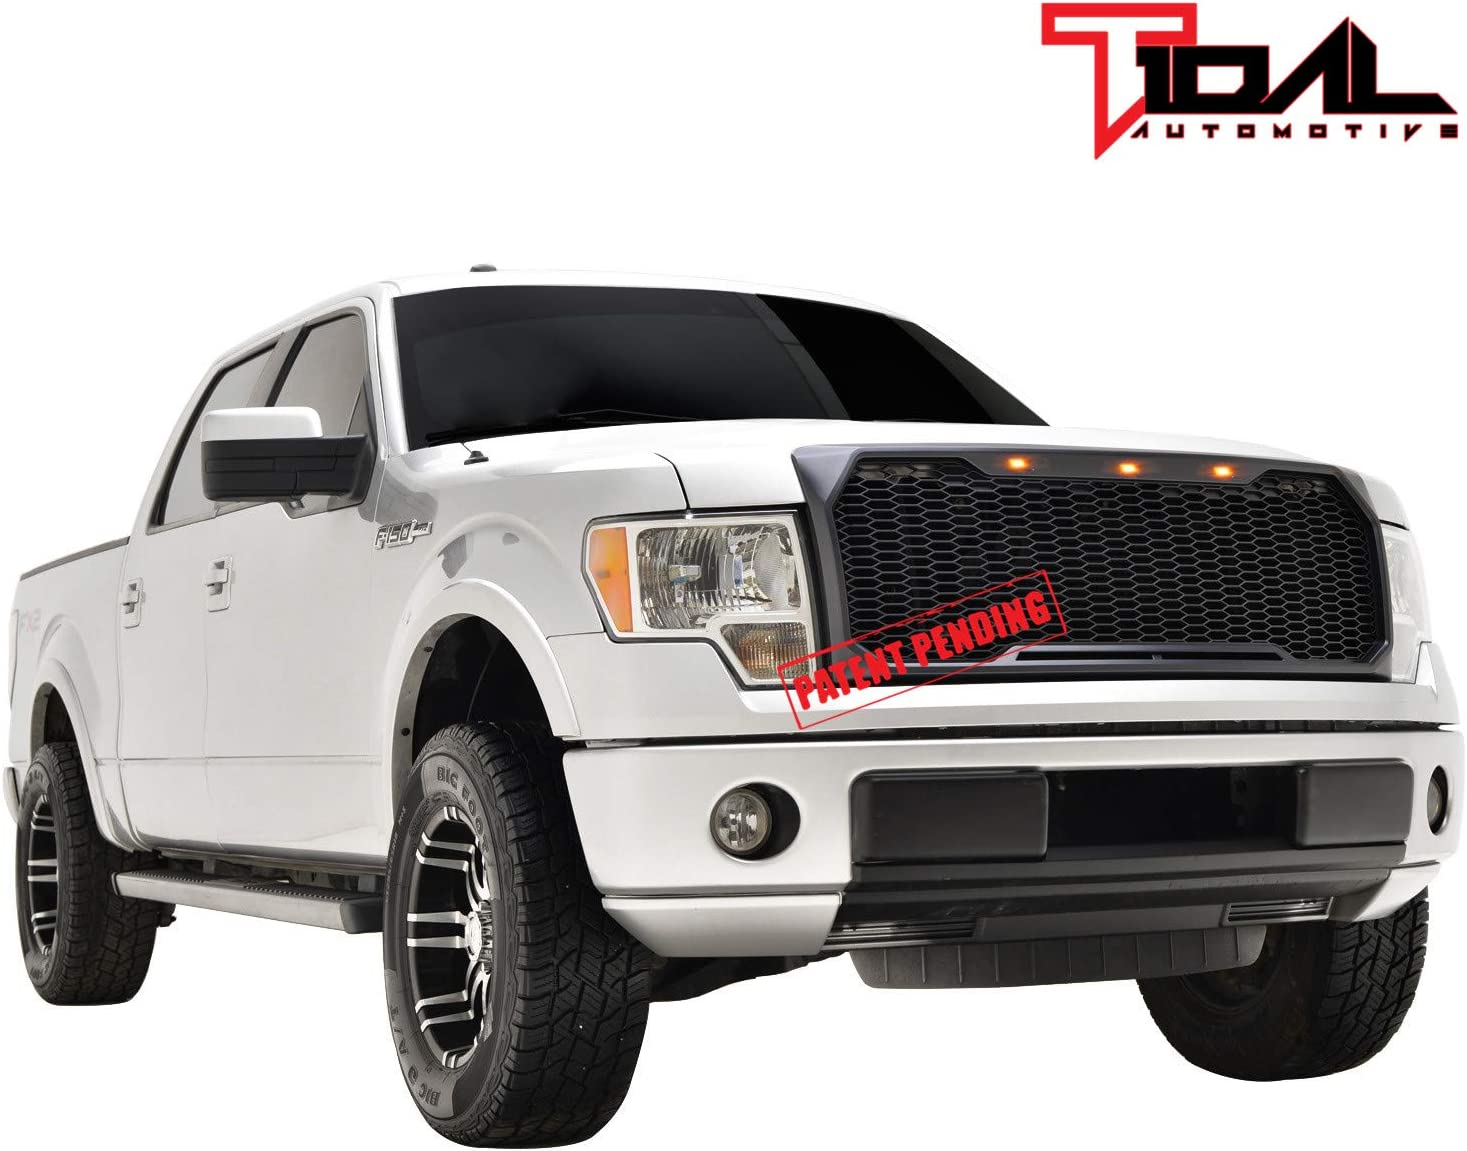 Tidal Replacement Upper Grille Front Grill with Amber LED Lights for 09-14 Ford F150 Matte Black